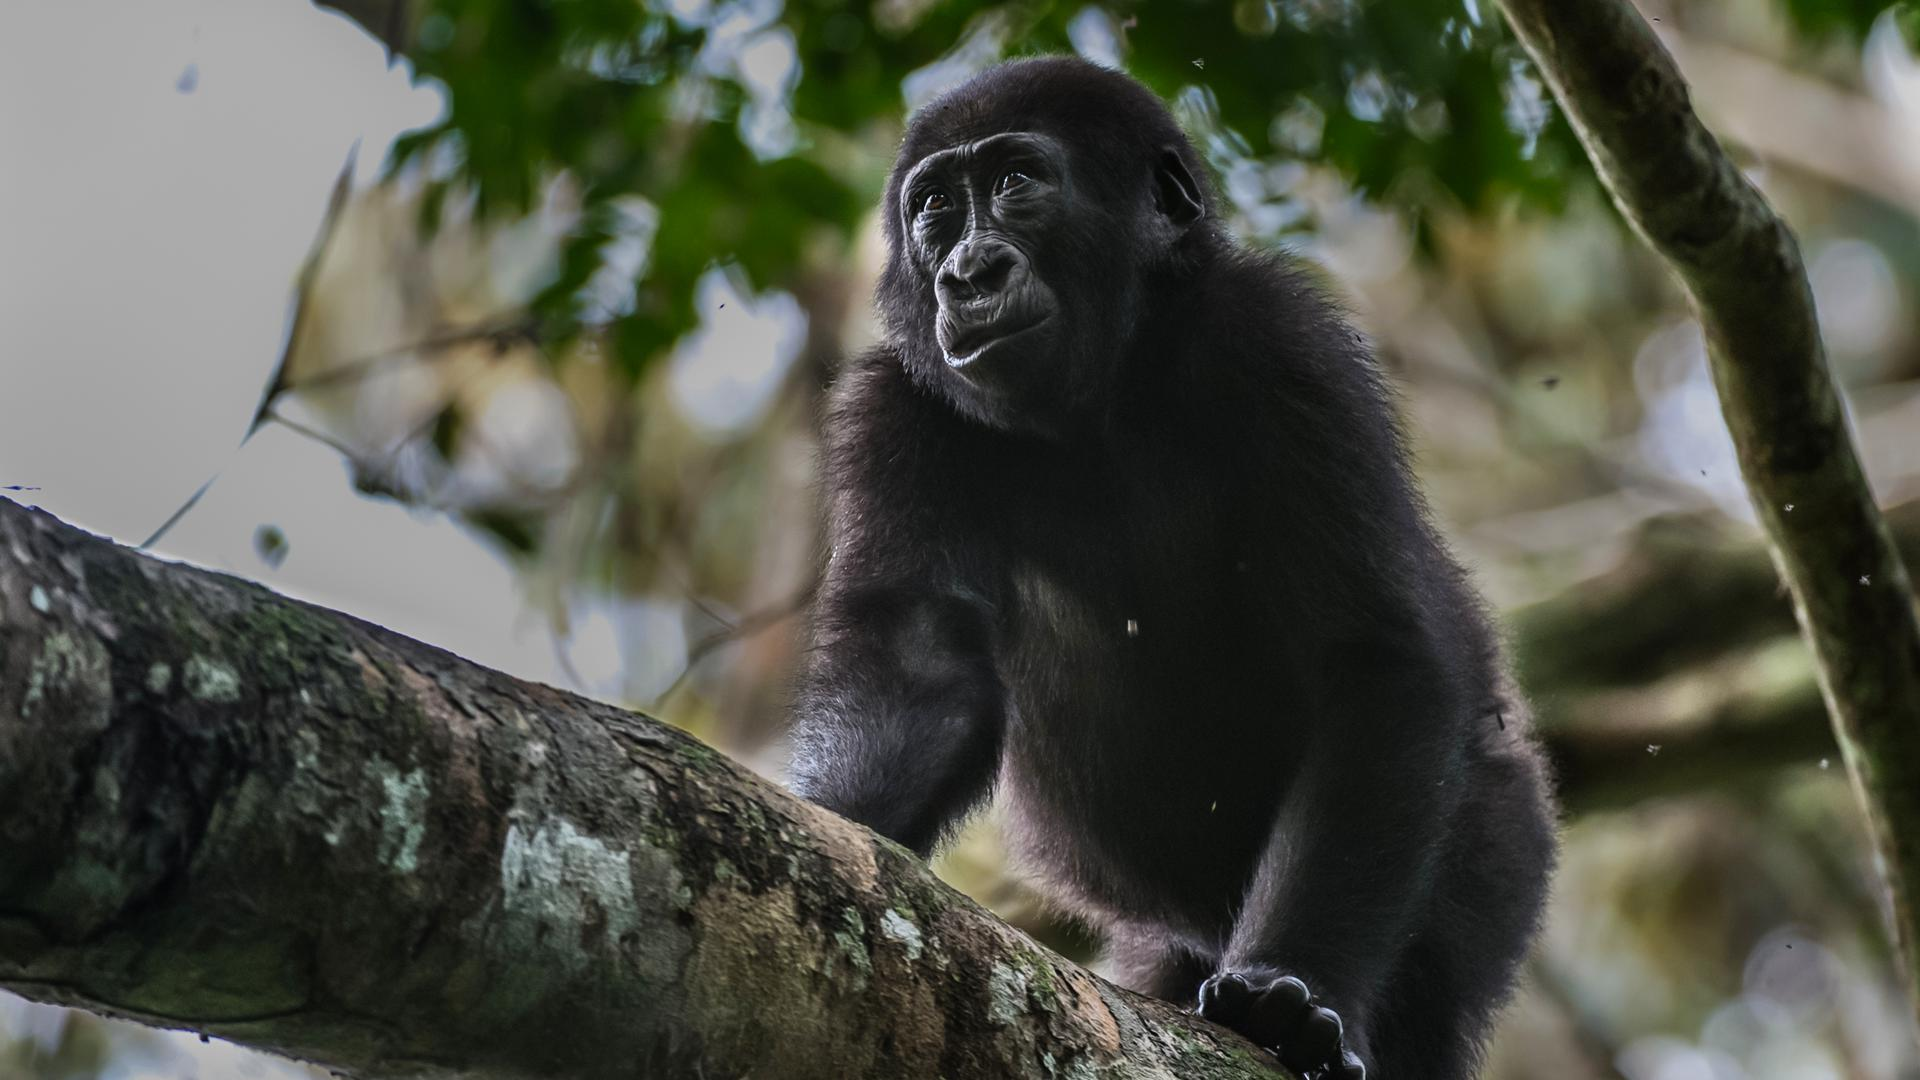 Gorilla habituation is an important aspect of developing the park.